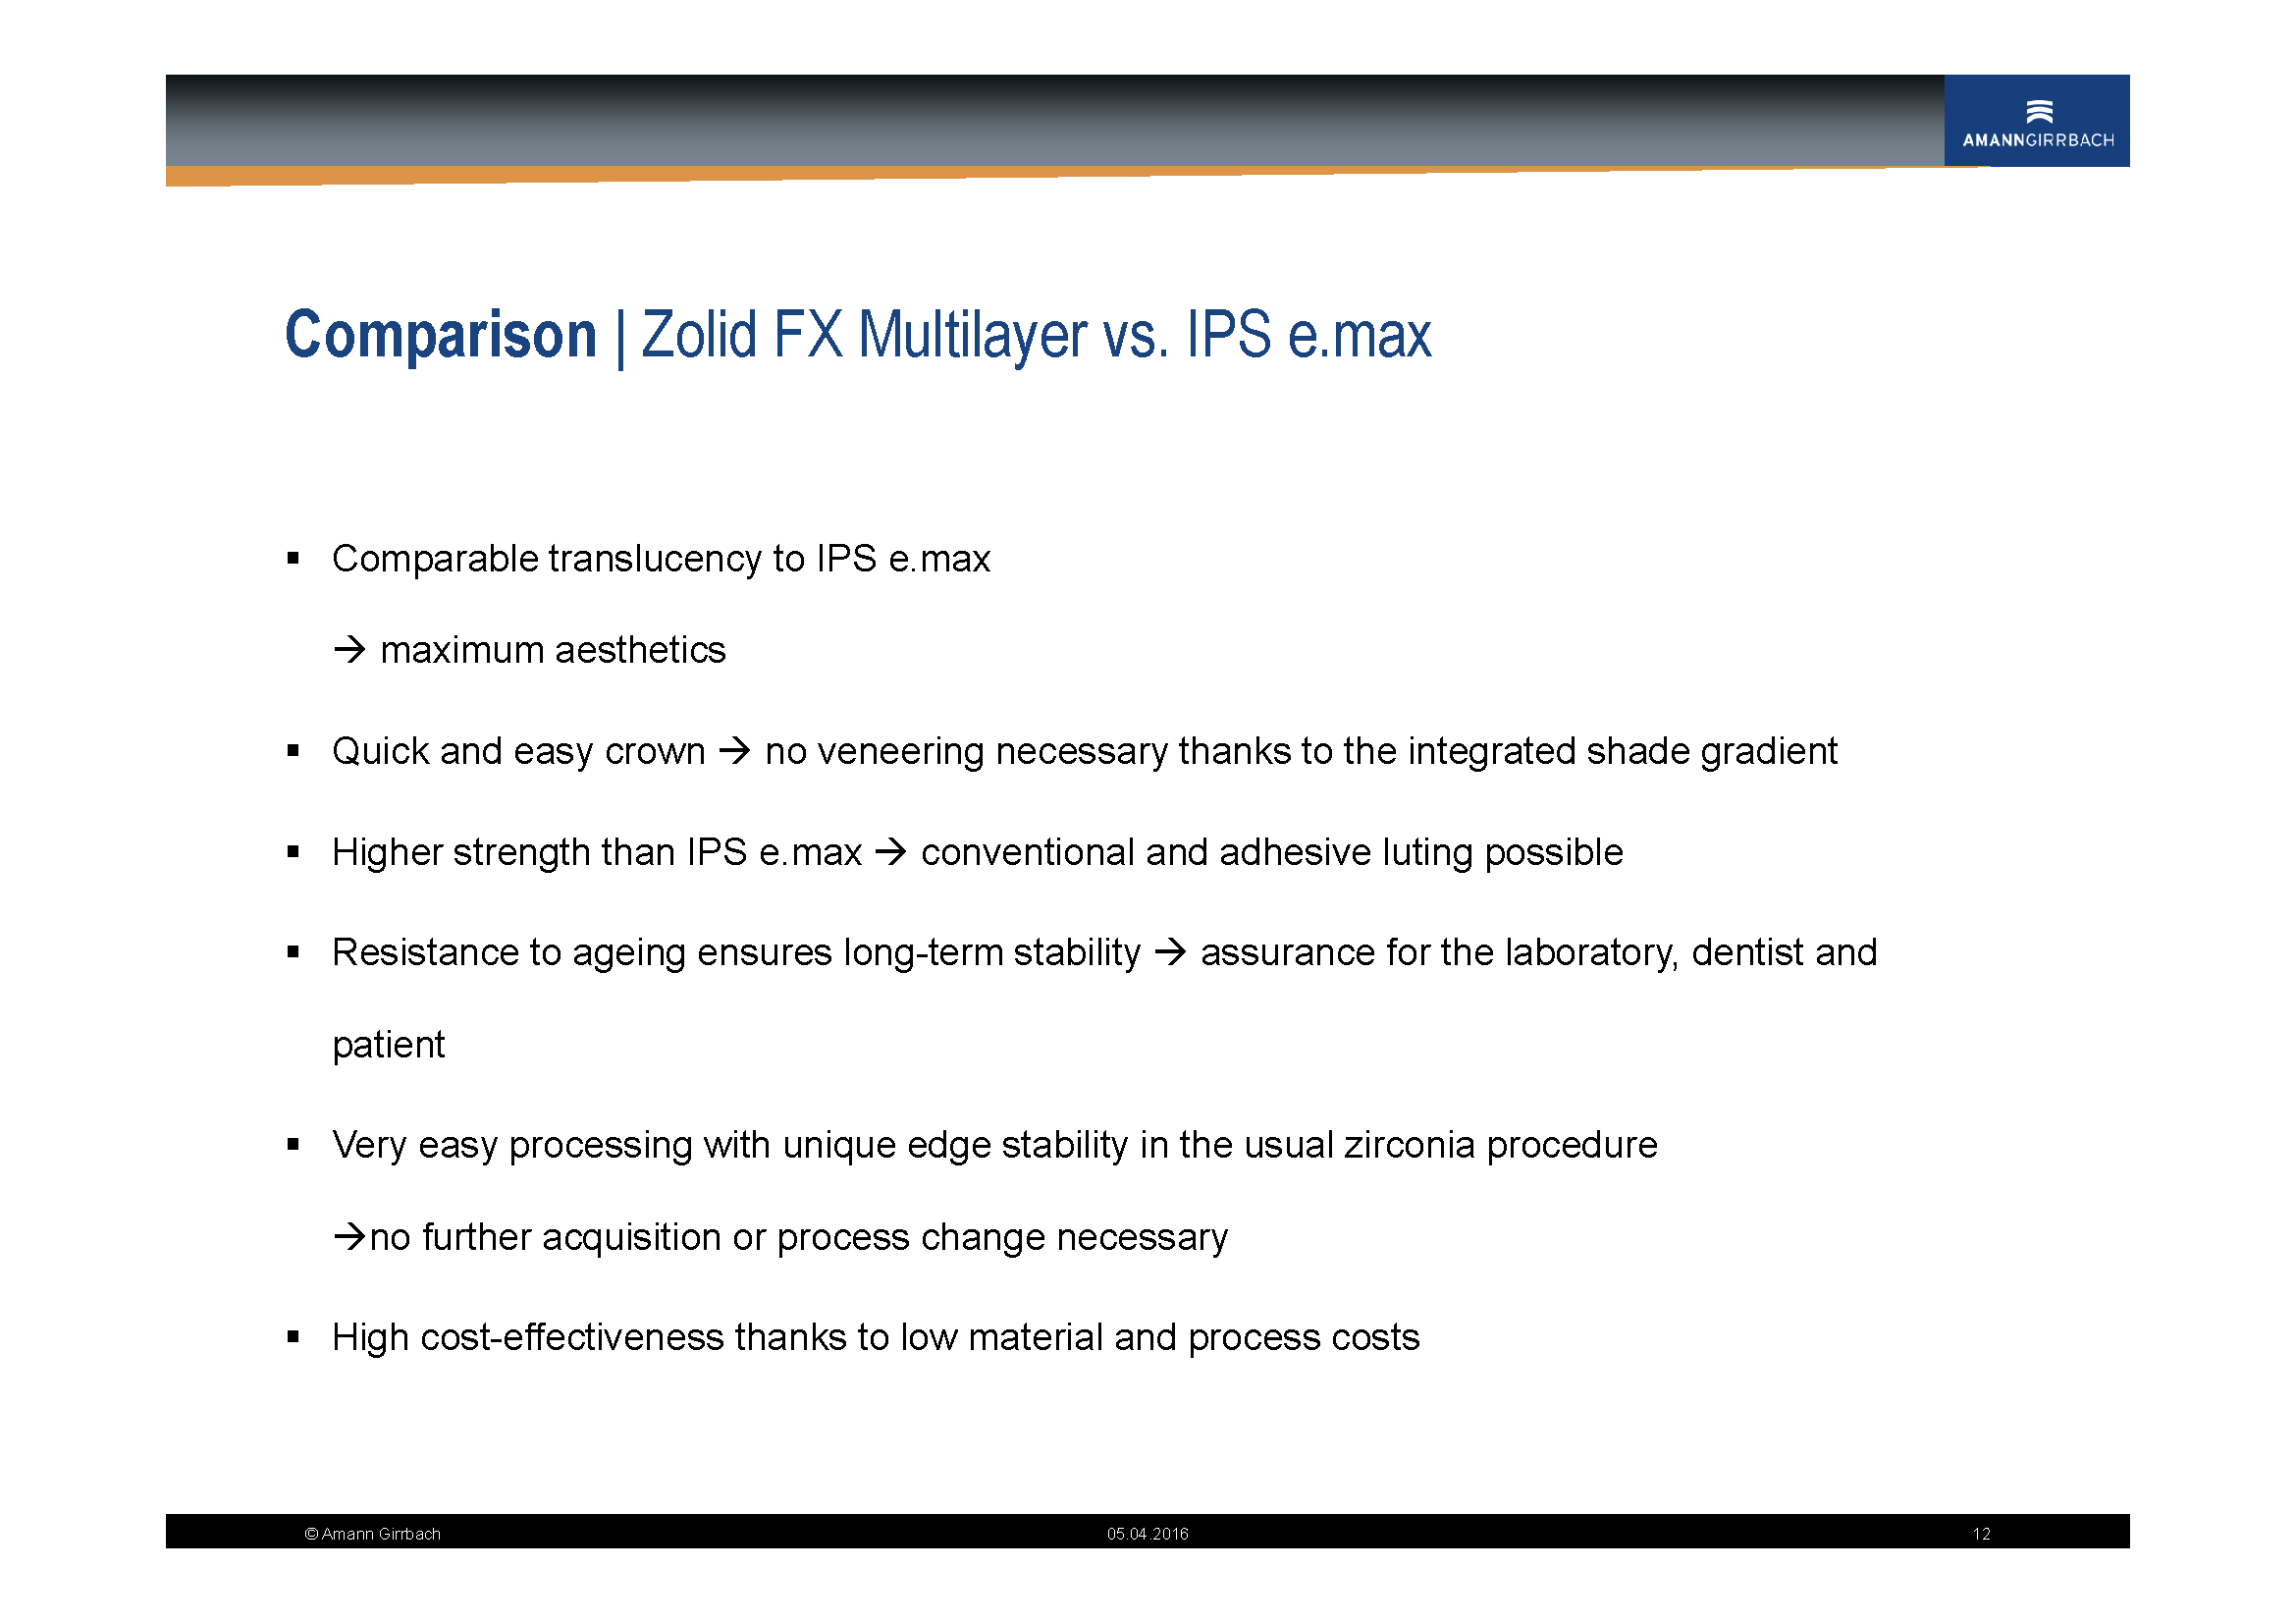 0001_Ceramill Zolid FX Multilayer_introduction info-2_Page_12